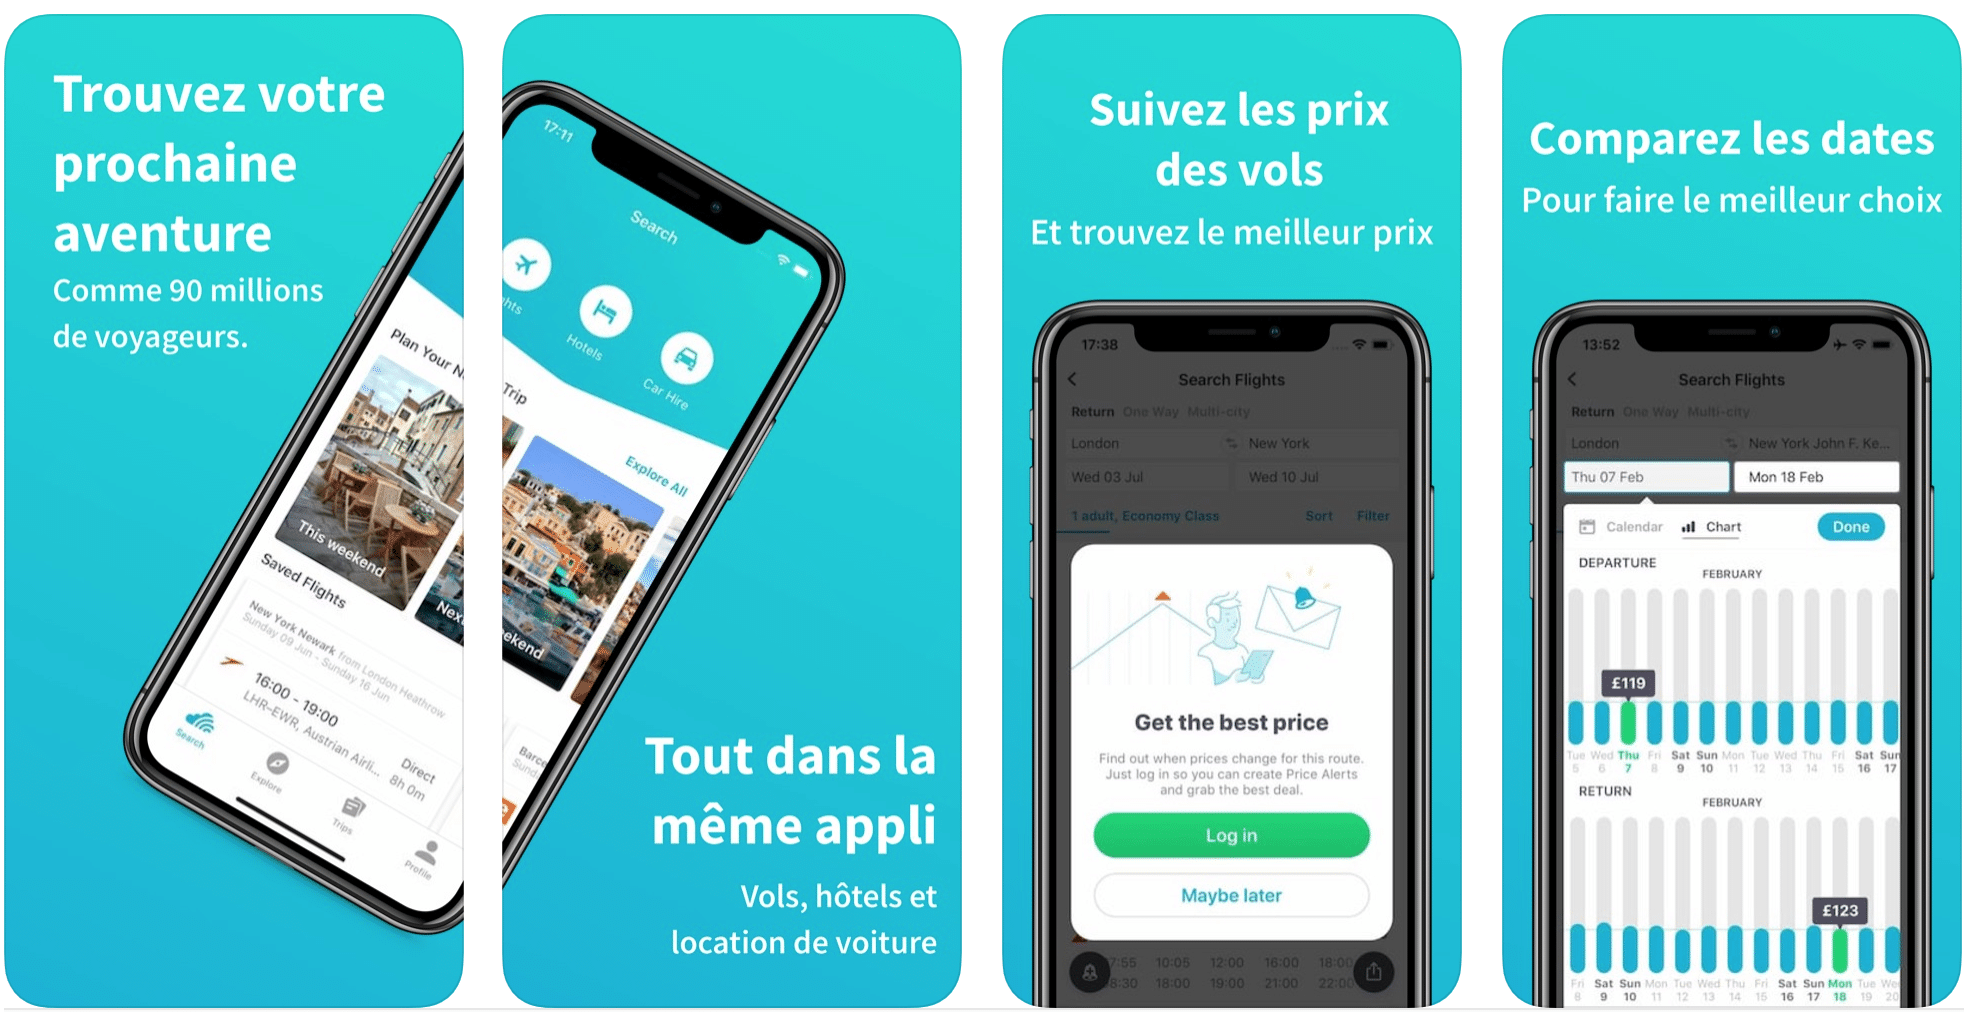 meilleures rencontres Apps Inde Android